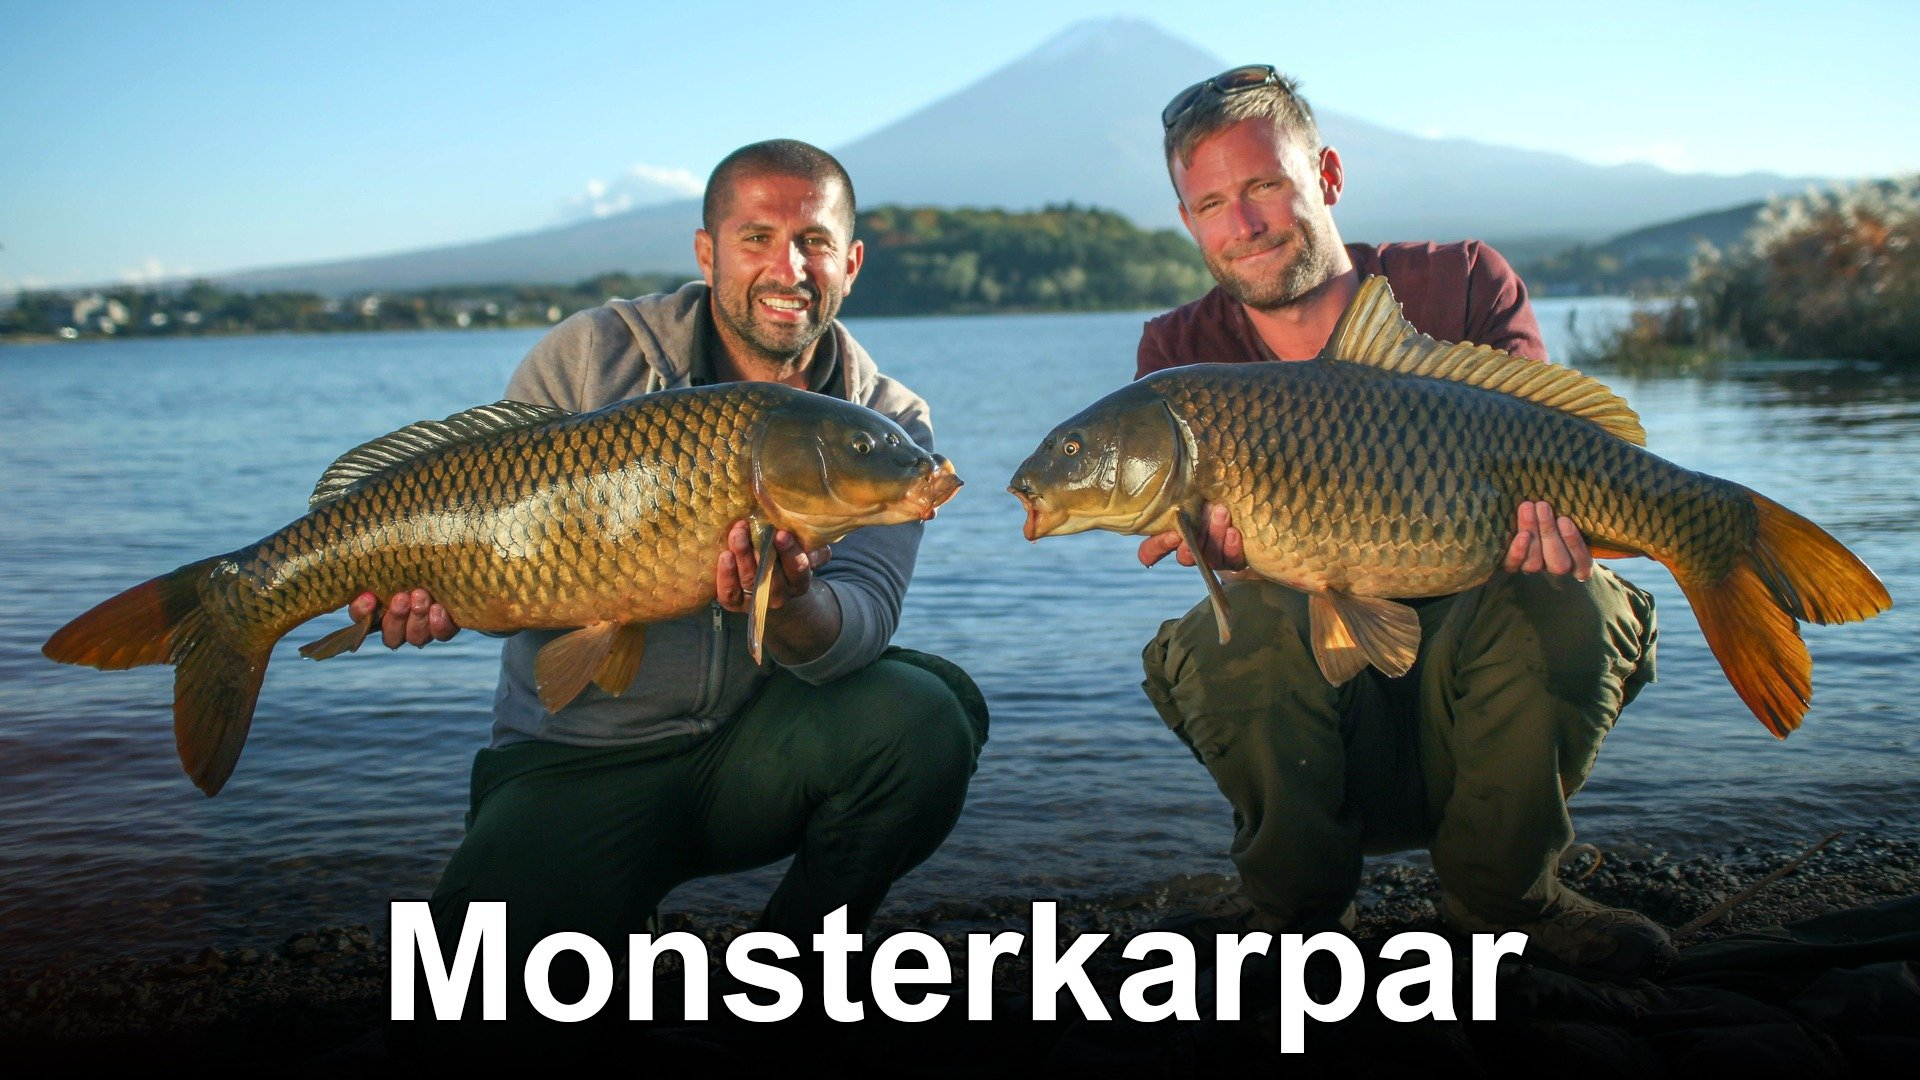 Monsterkarpar